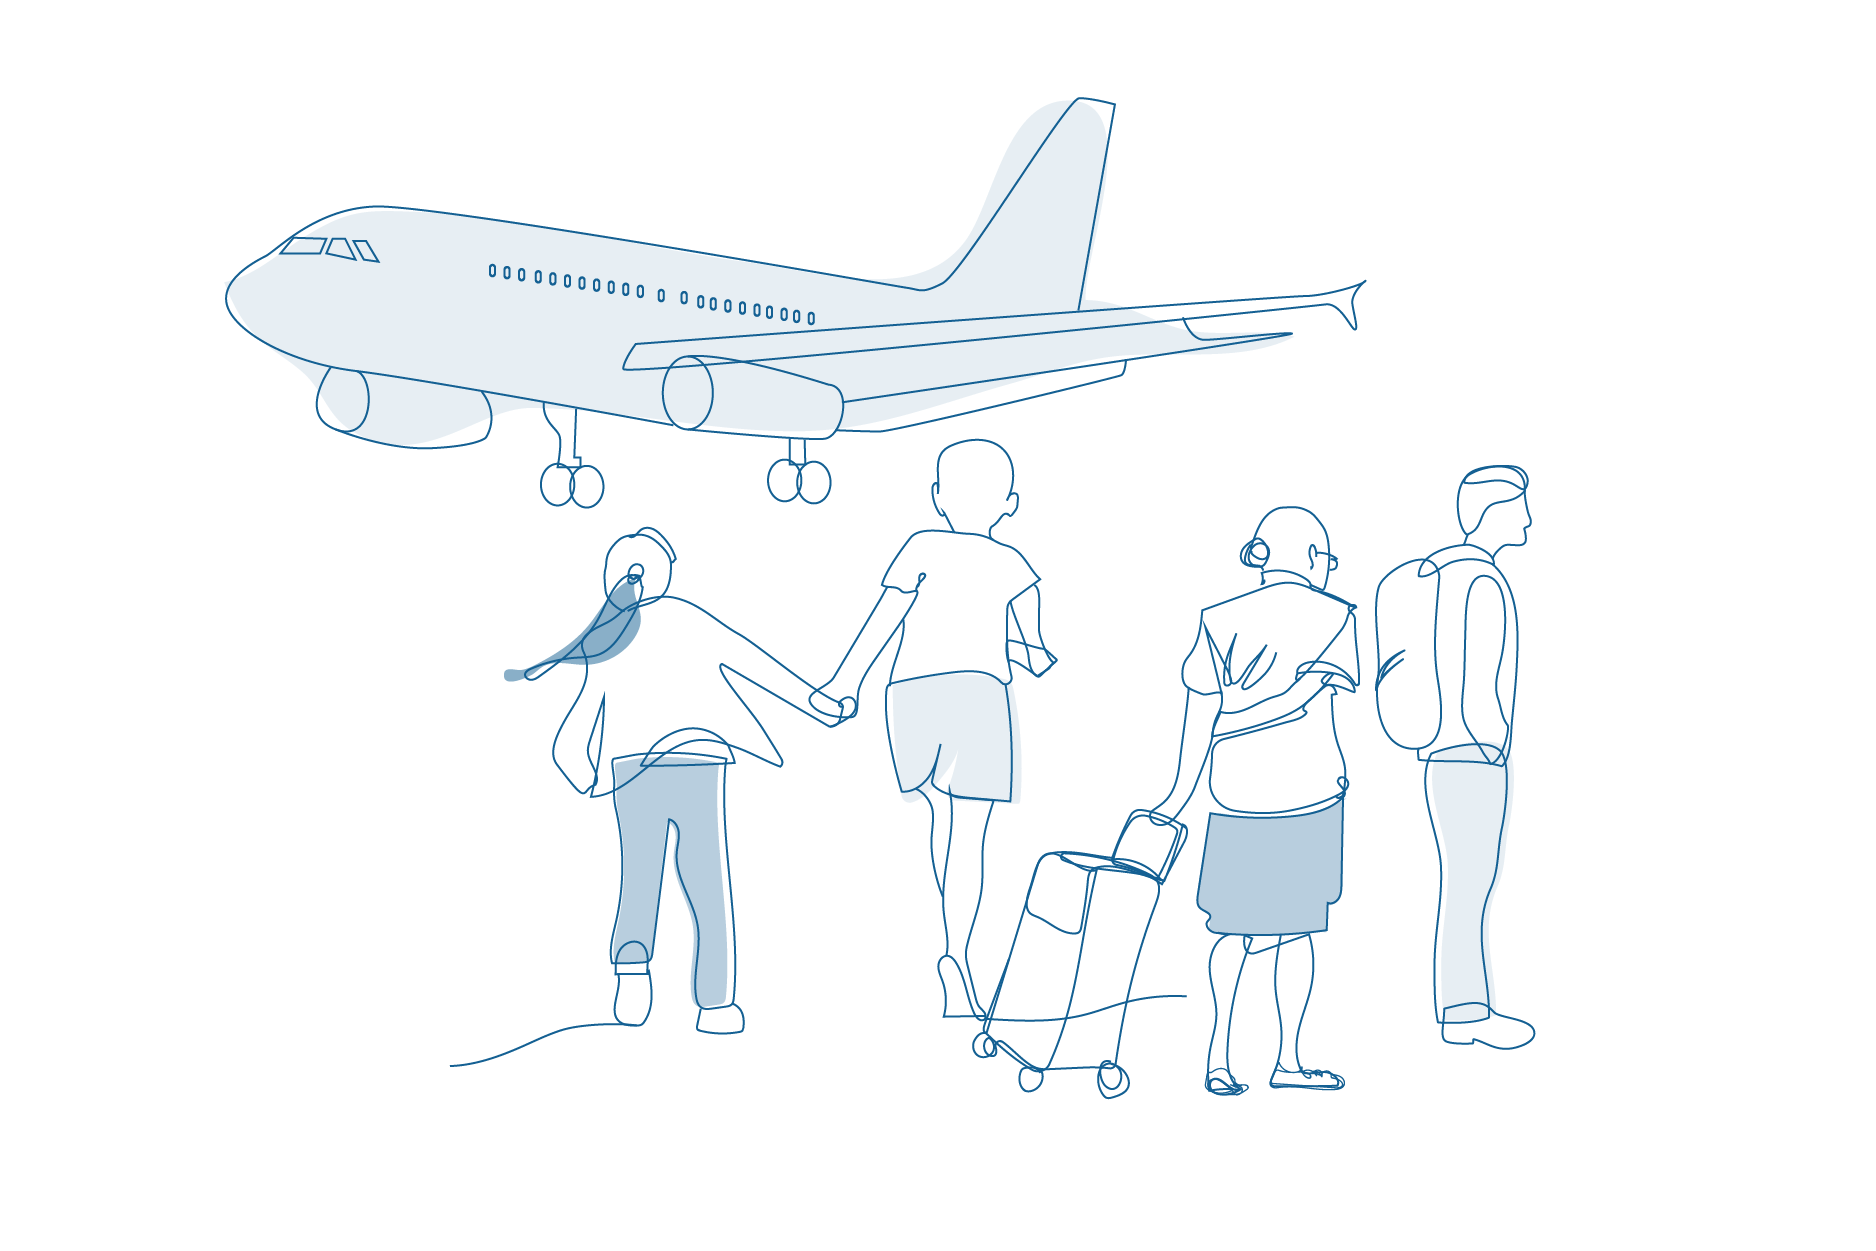 Line drawing of people waiting for aeroplane.